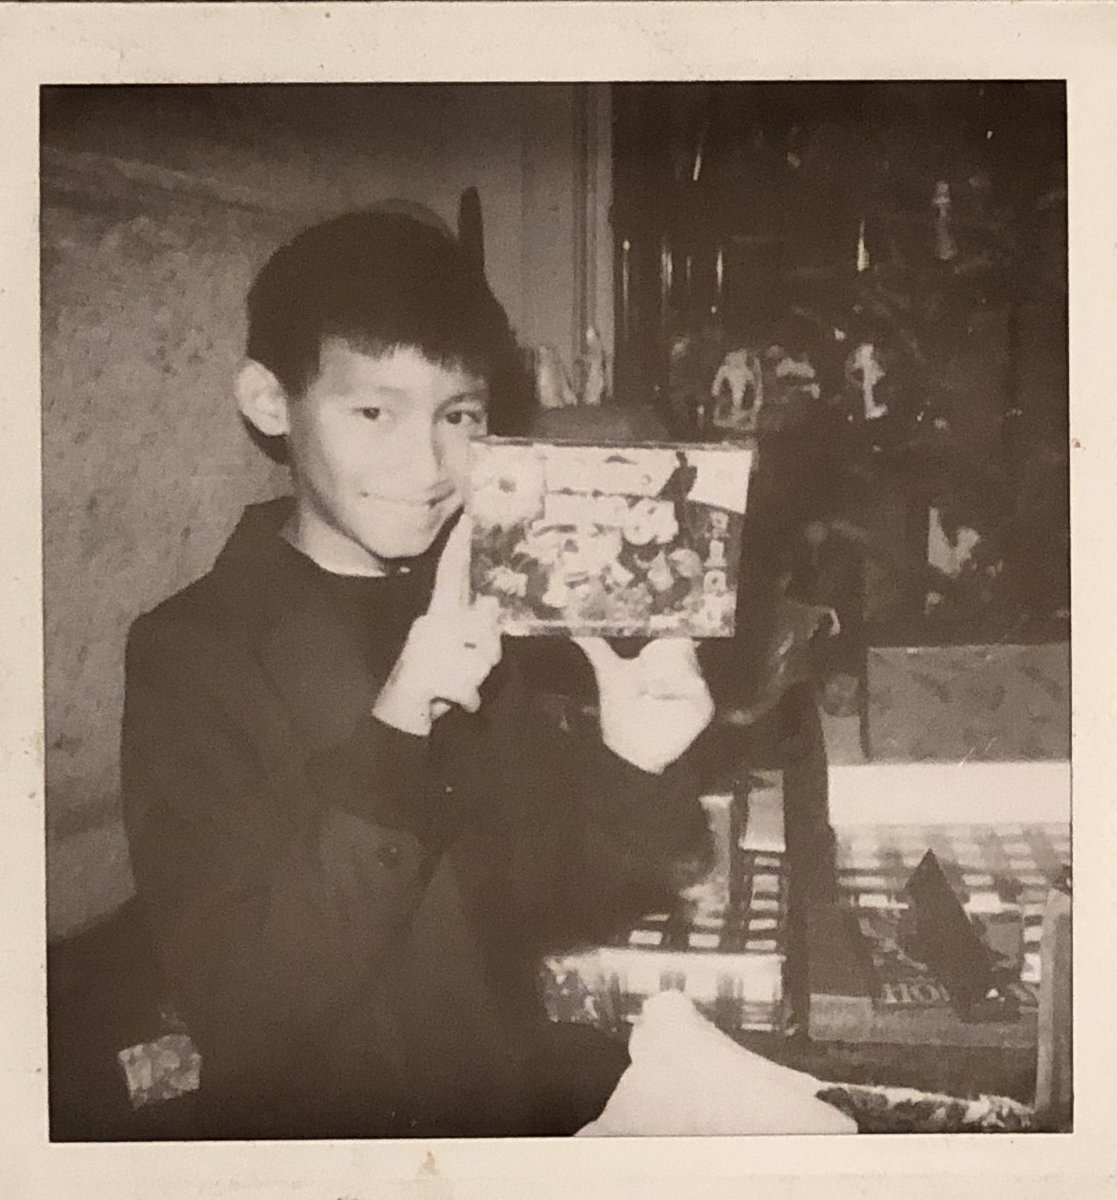 here is a b&w polaroid of me on the christmas that i got Donkey Kong 64